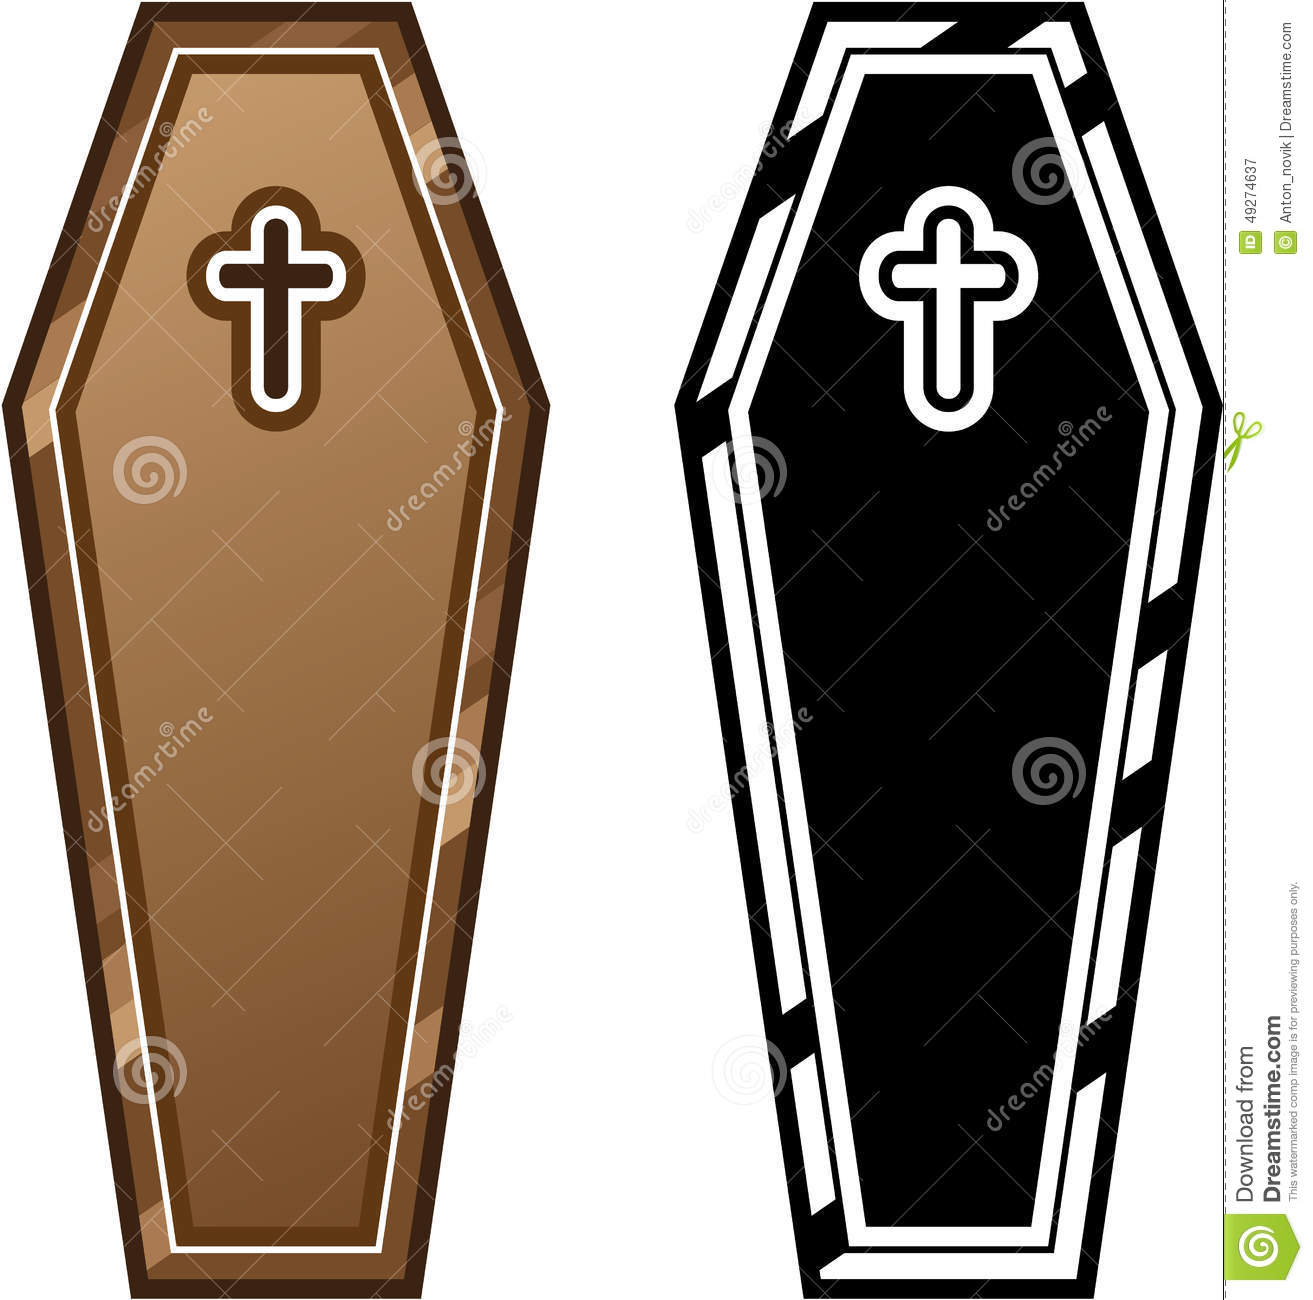 Coffins vector stock vector. Illustration of isolated.